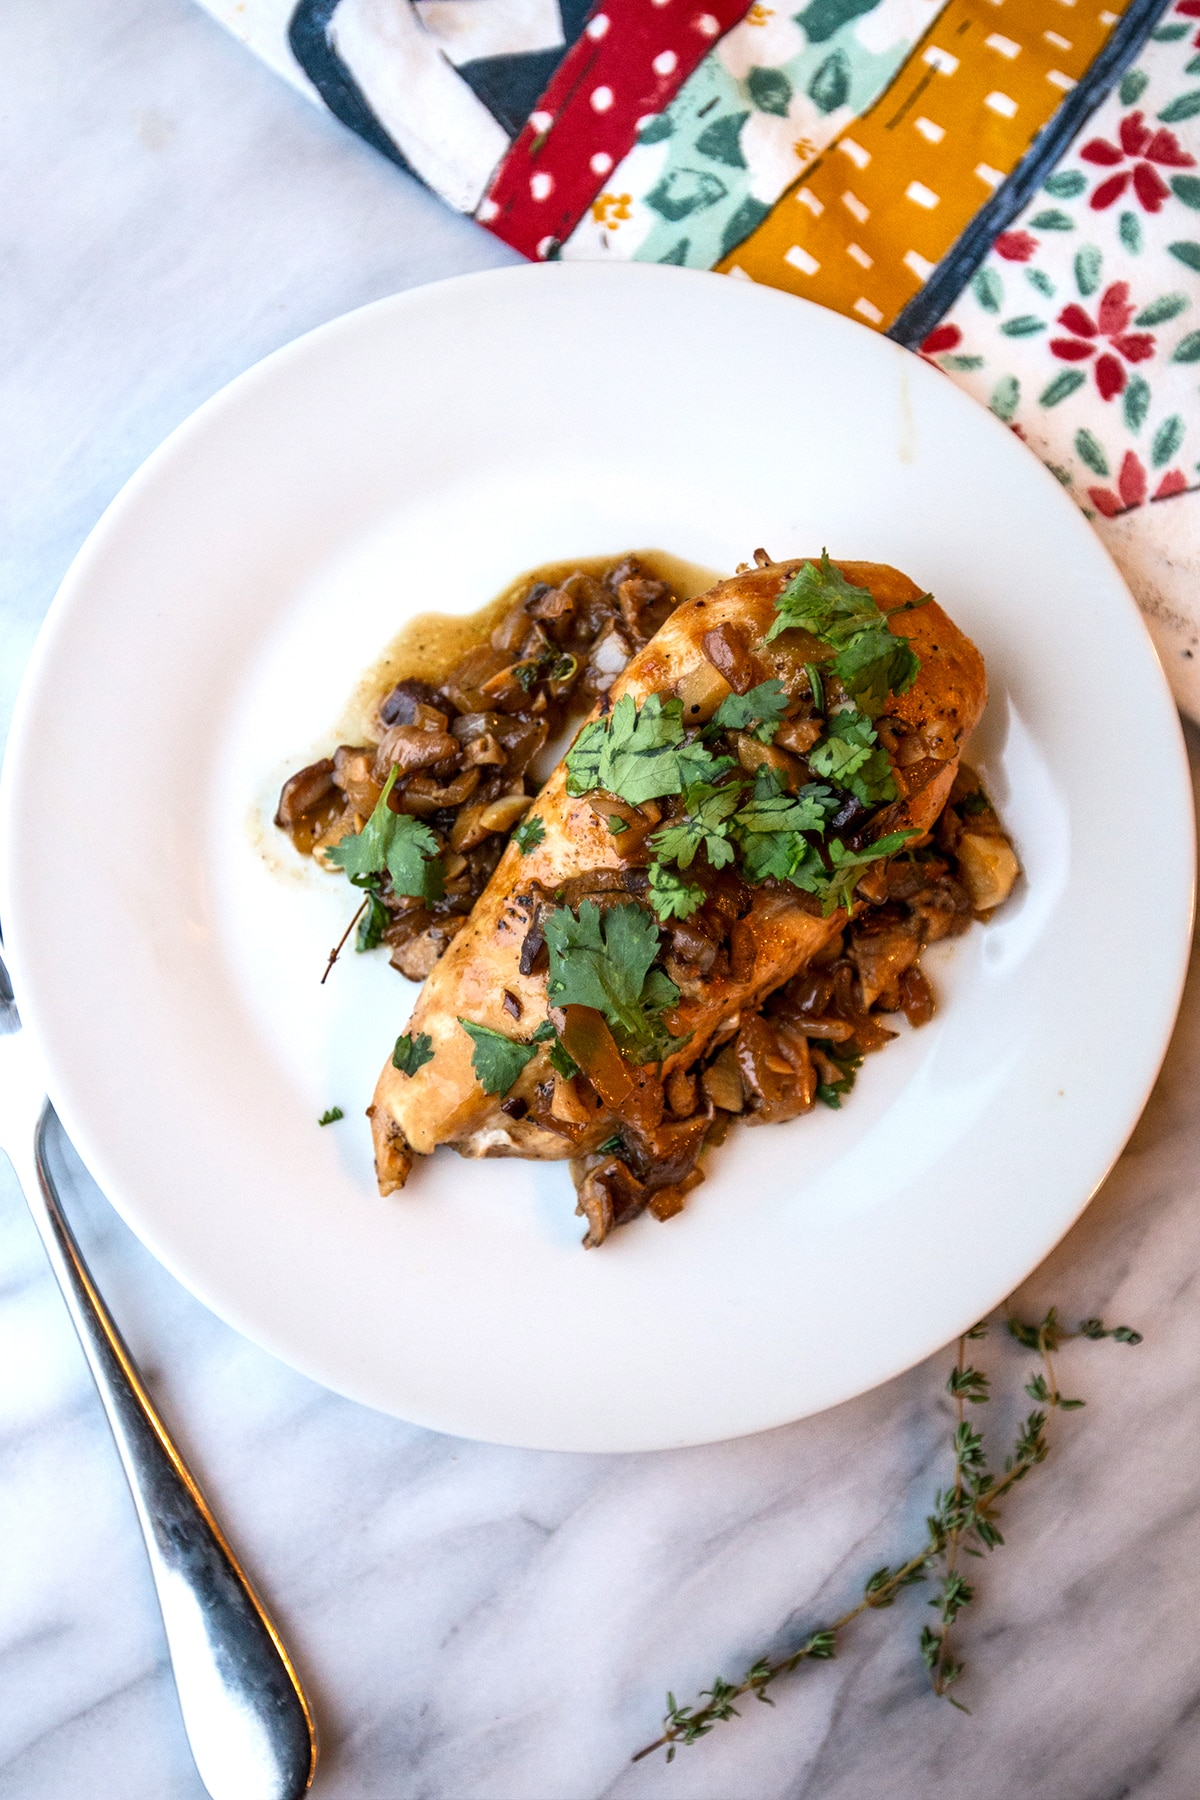 Delicious and easy Chicken in caramelized onion sauce- so quick and good!